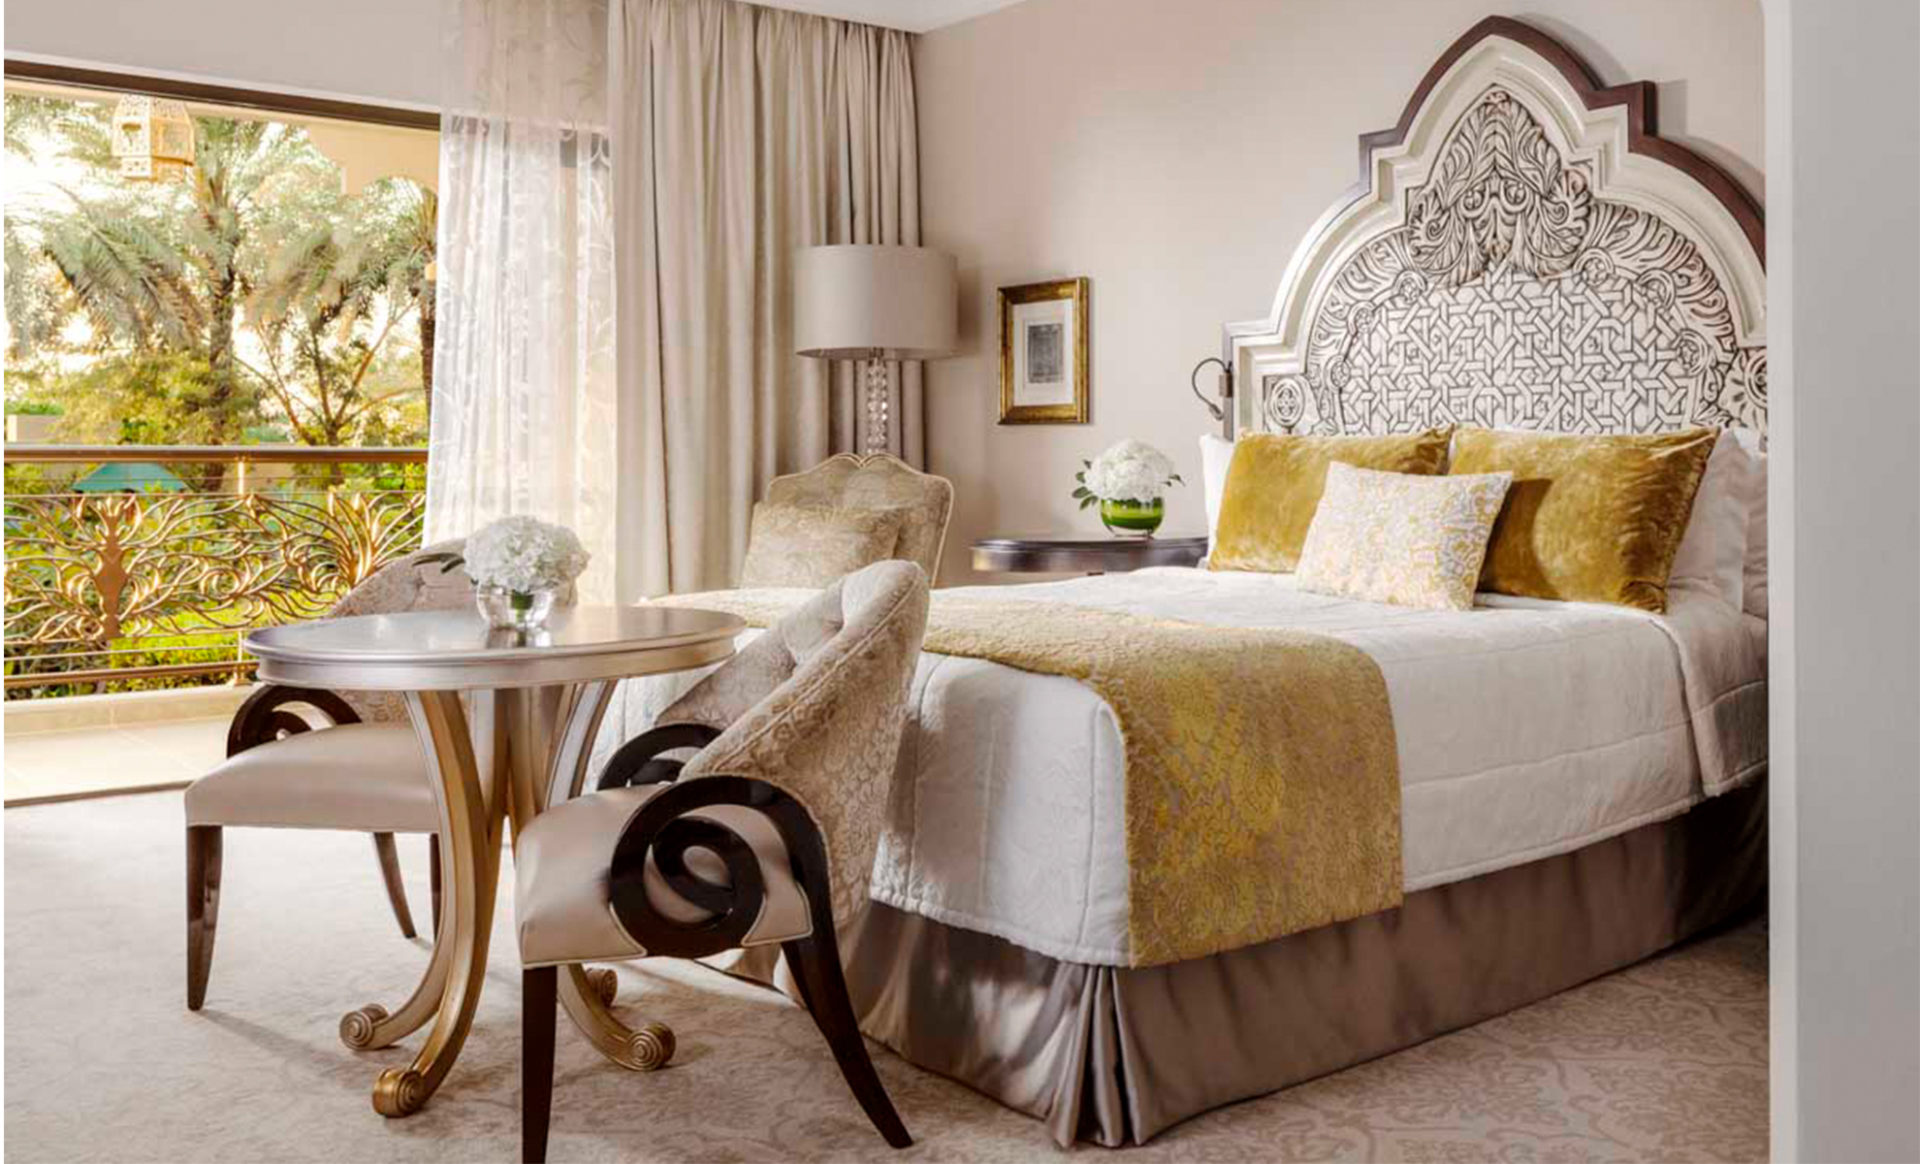 Arabian-Court-dubai-one-and-only-bedroom